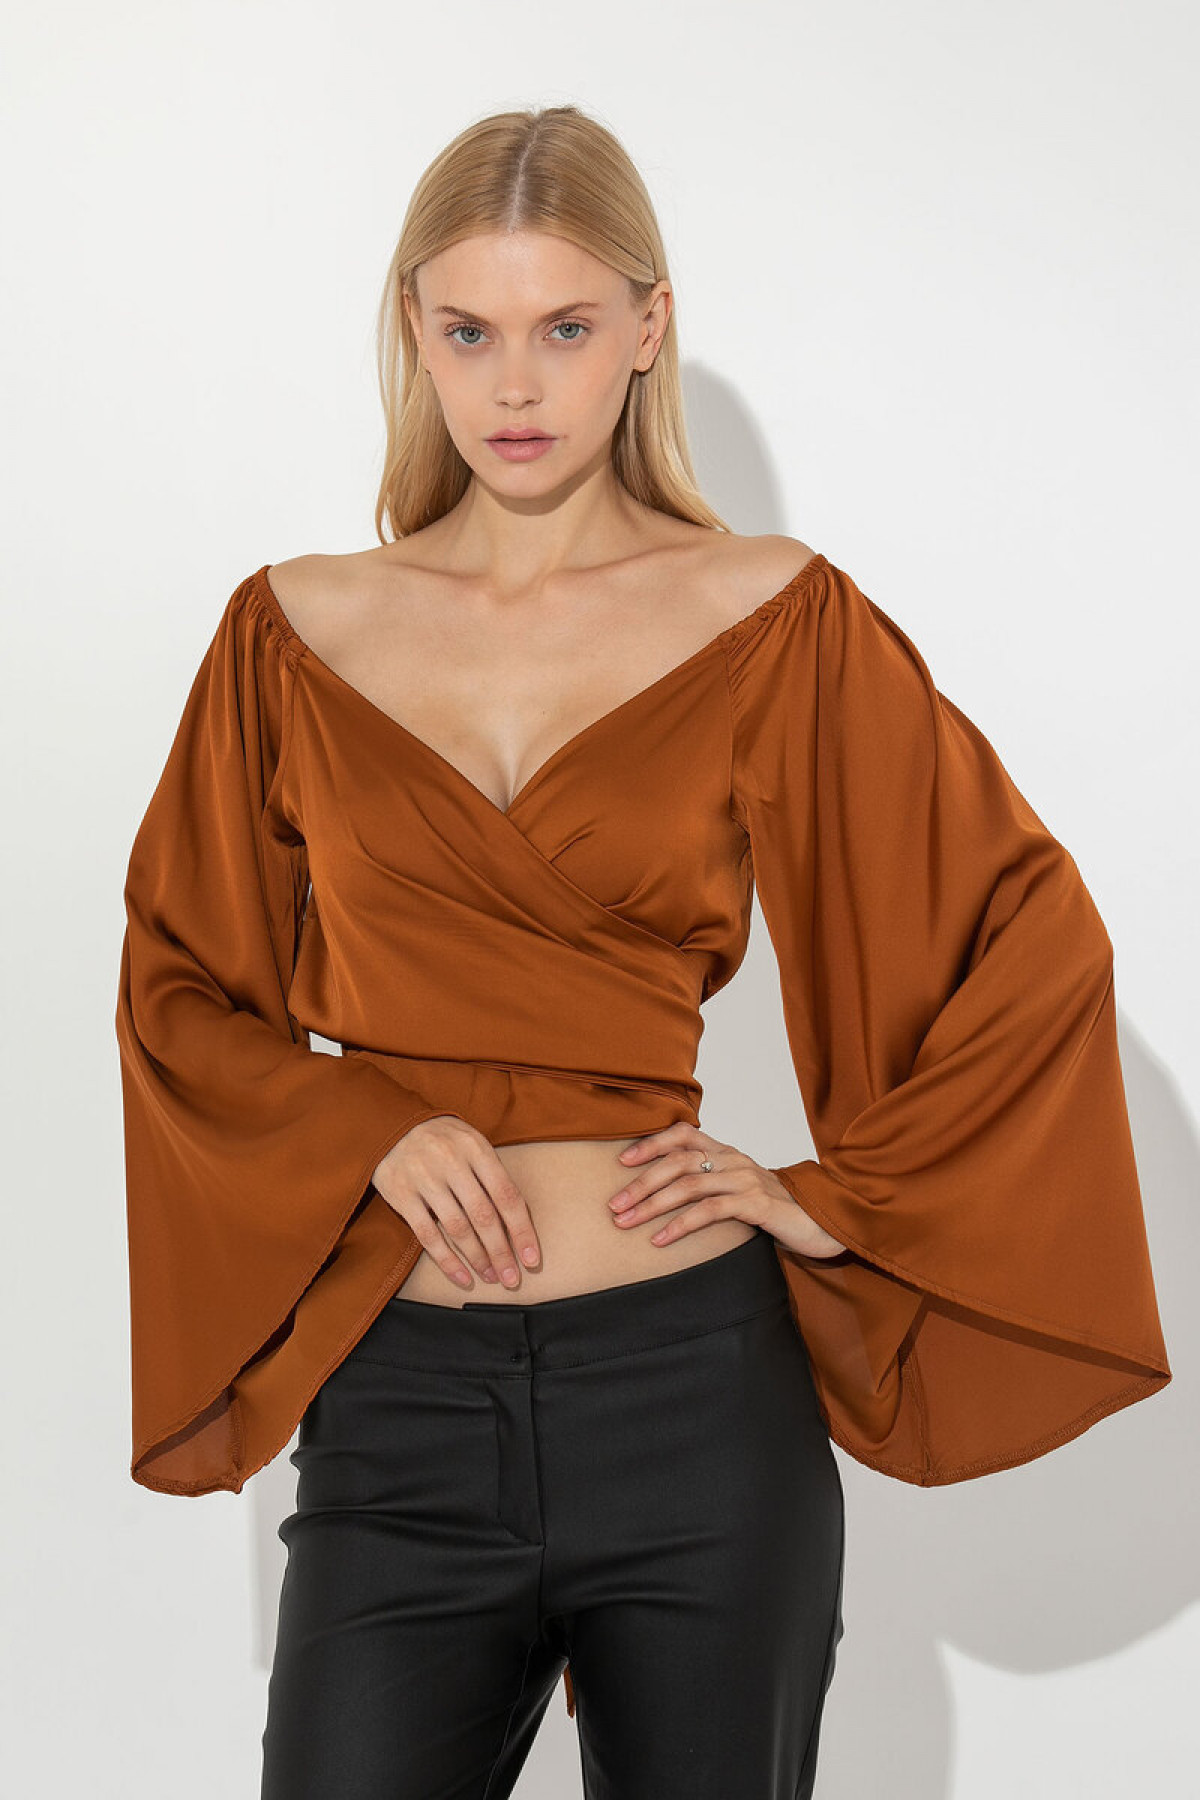 CARAMEL SATIN CROP TOP